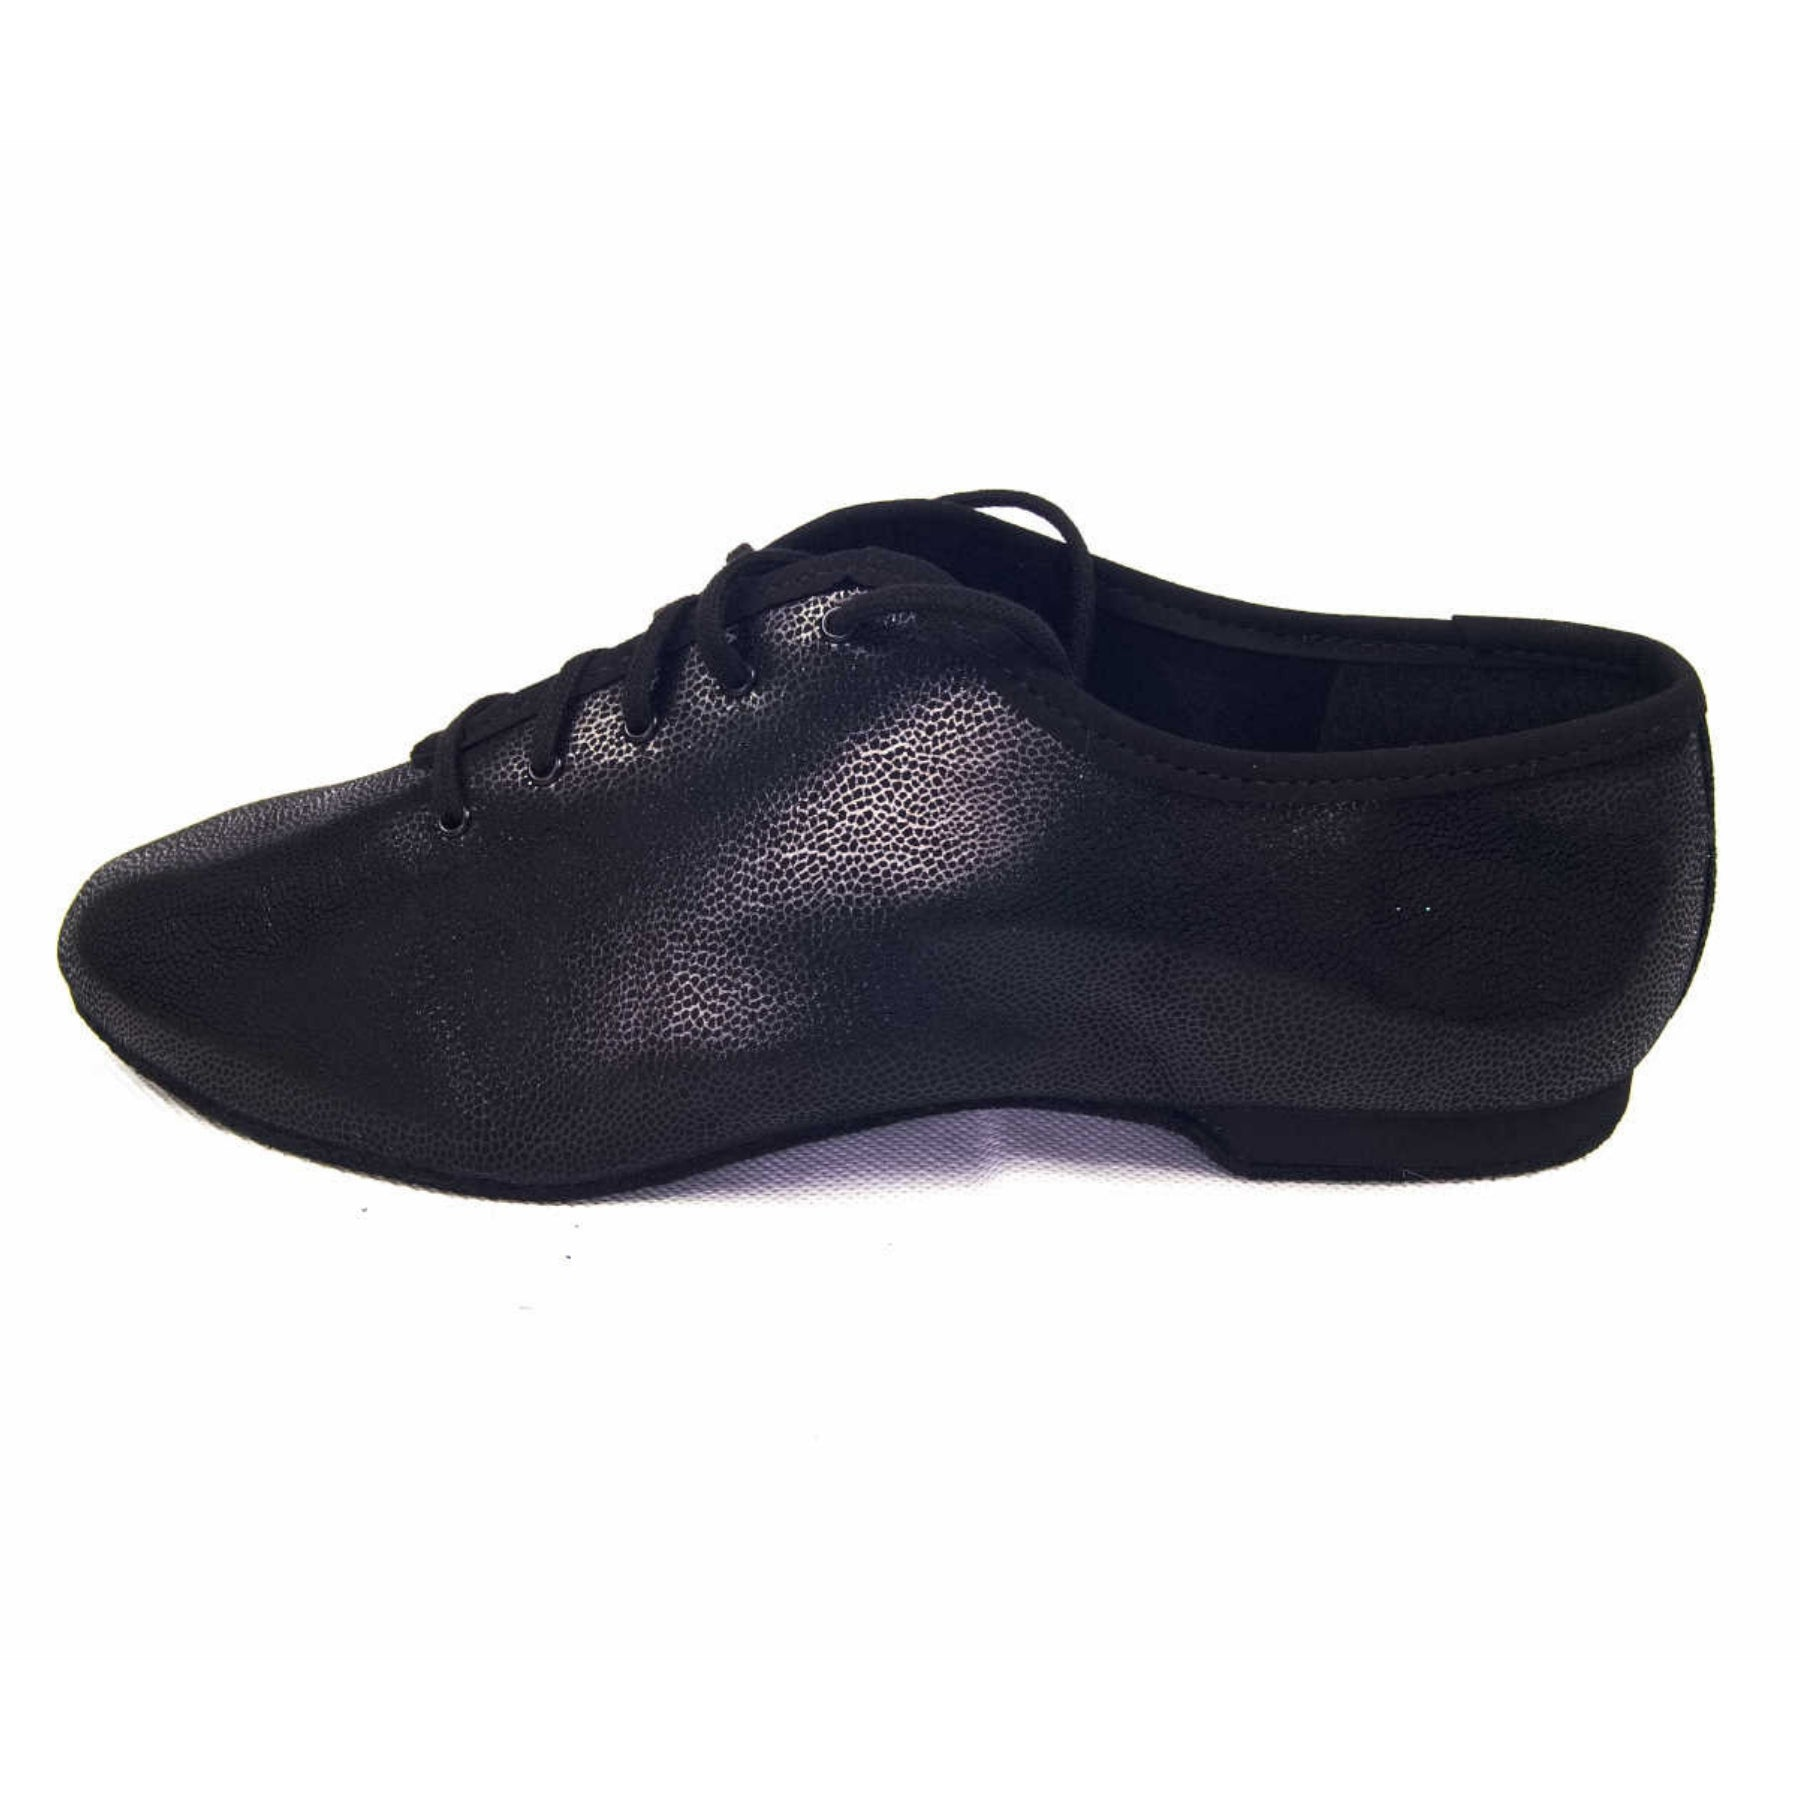 dance in style - oslo Italian made unisex jazz dance shoe, 30 day return policy, flat rate shipping.